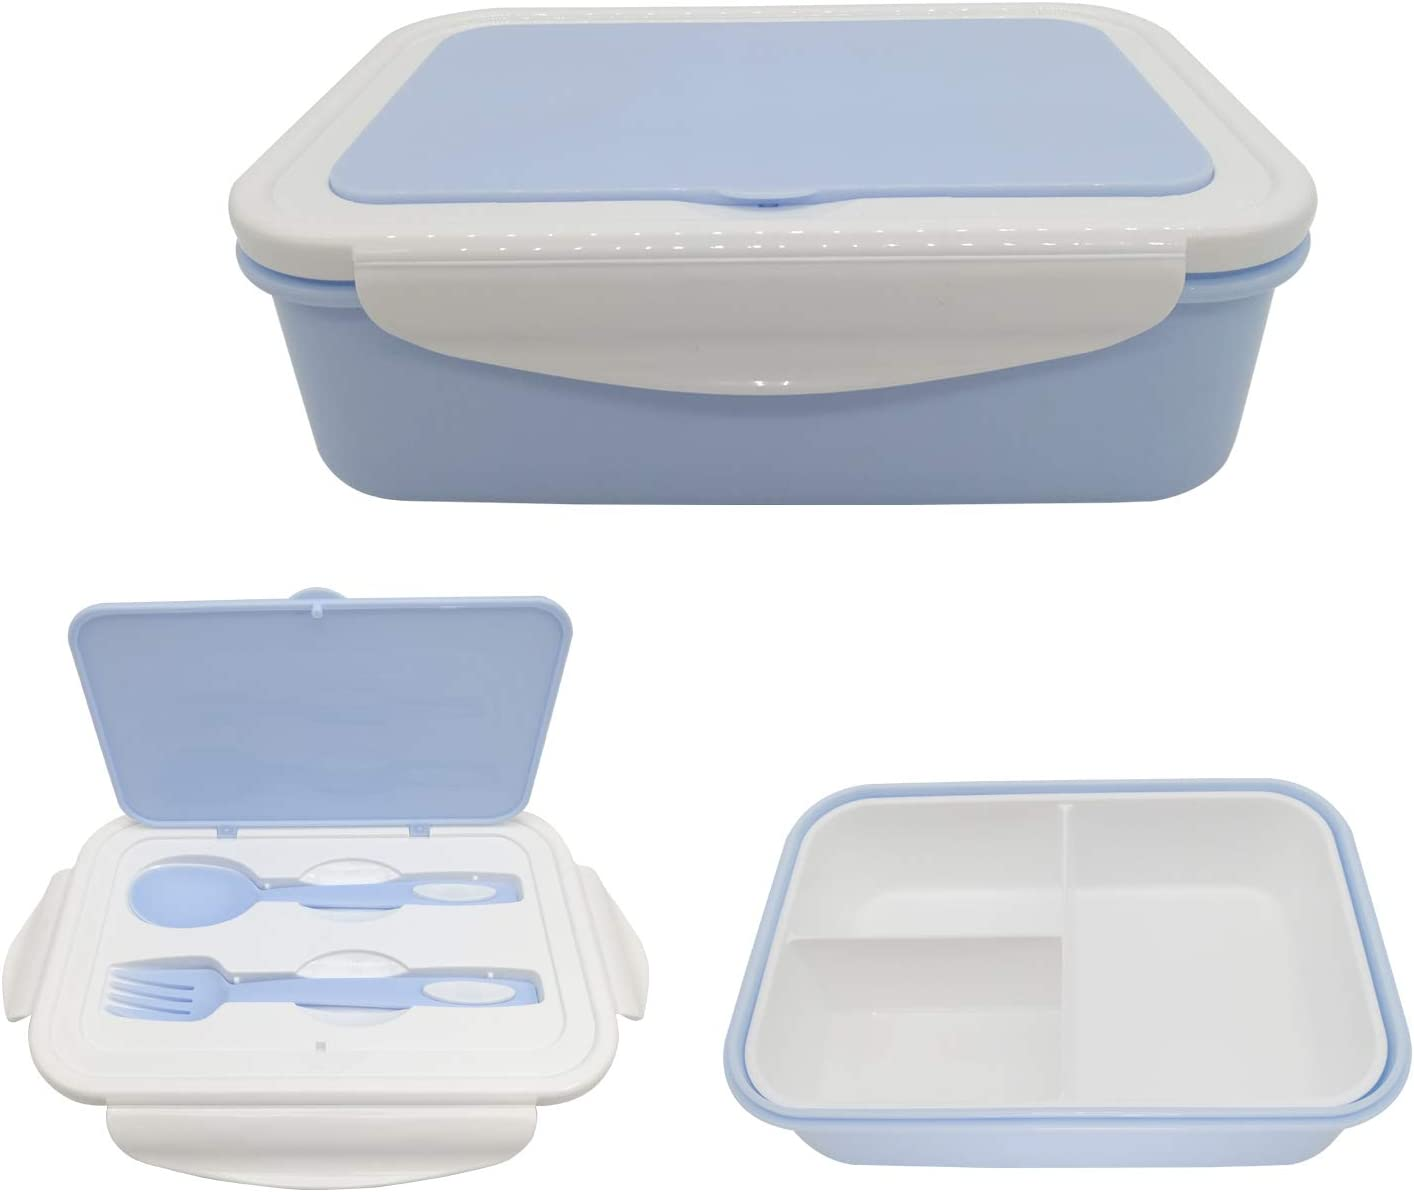 Bento Box, Lunch Box for Kids Adults, 3 Compartment Bento Lunch container, Food Storage Container Boxes, BPA Free On-the-Go Meal Prep Containers, Microwave/Dishwasher/Freezer Safe (BLUE)